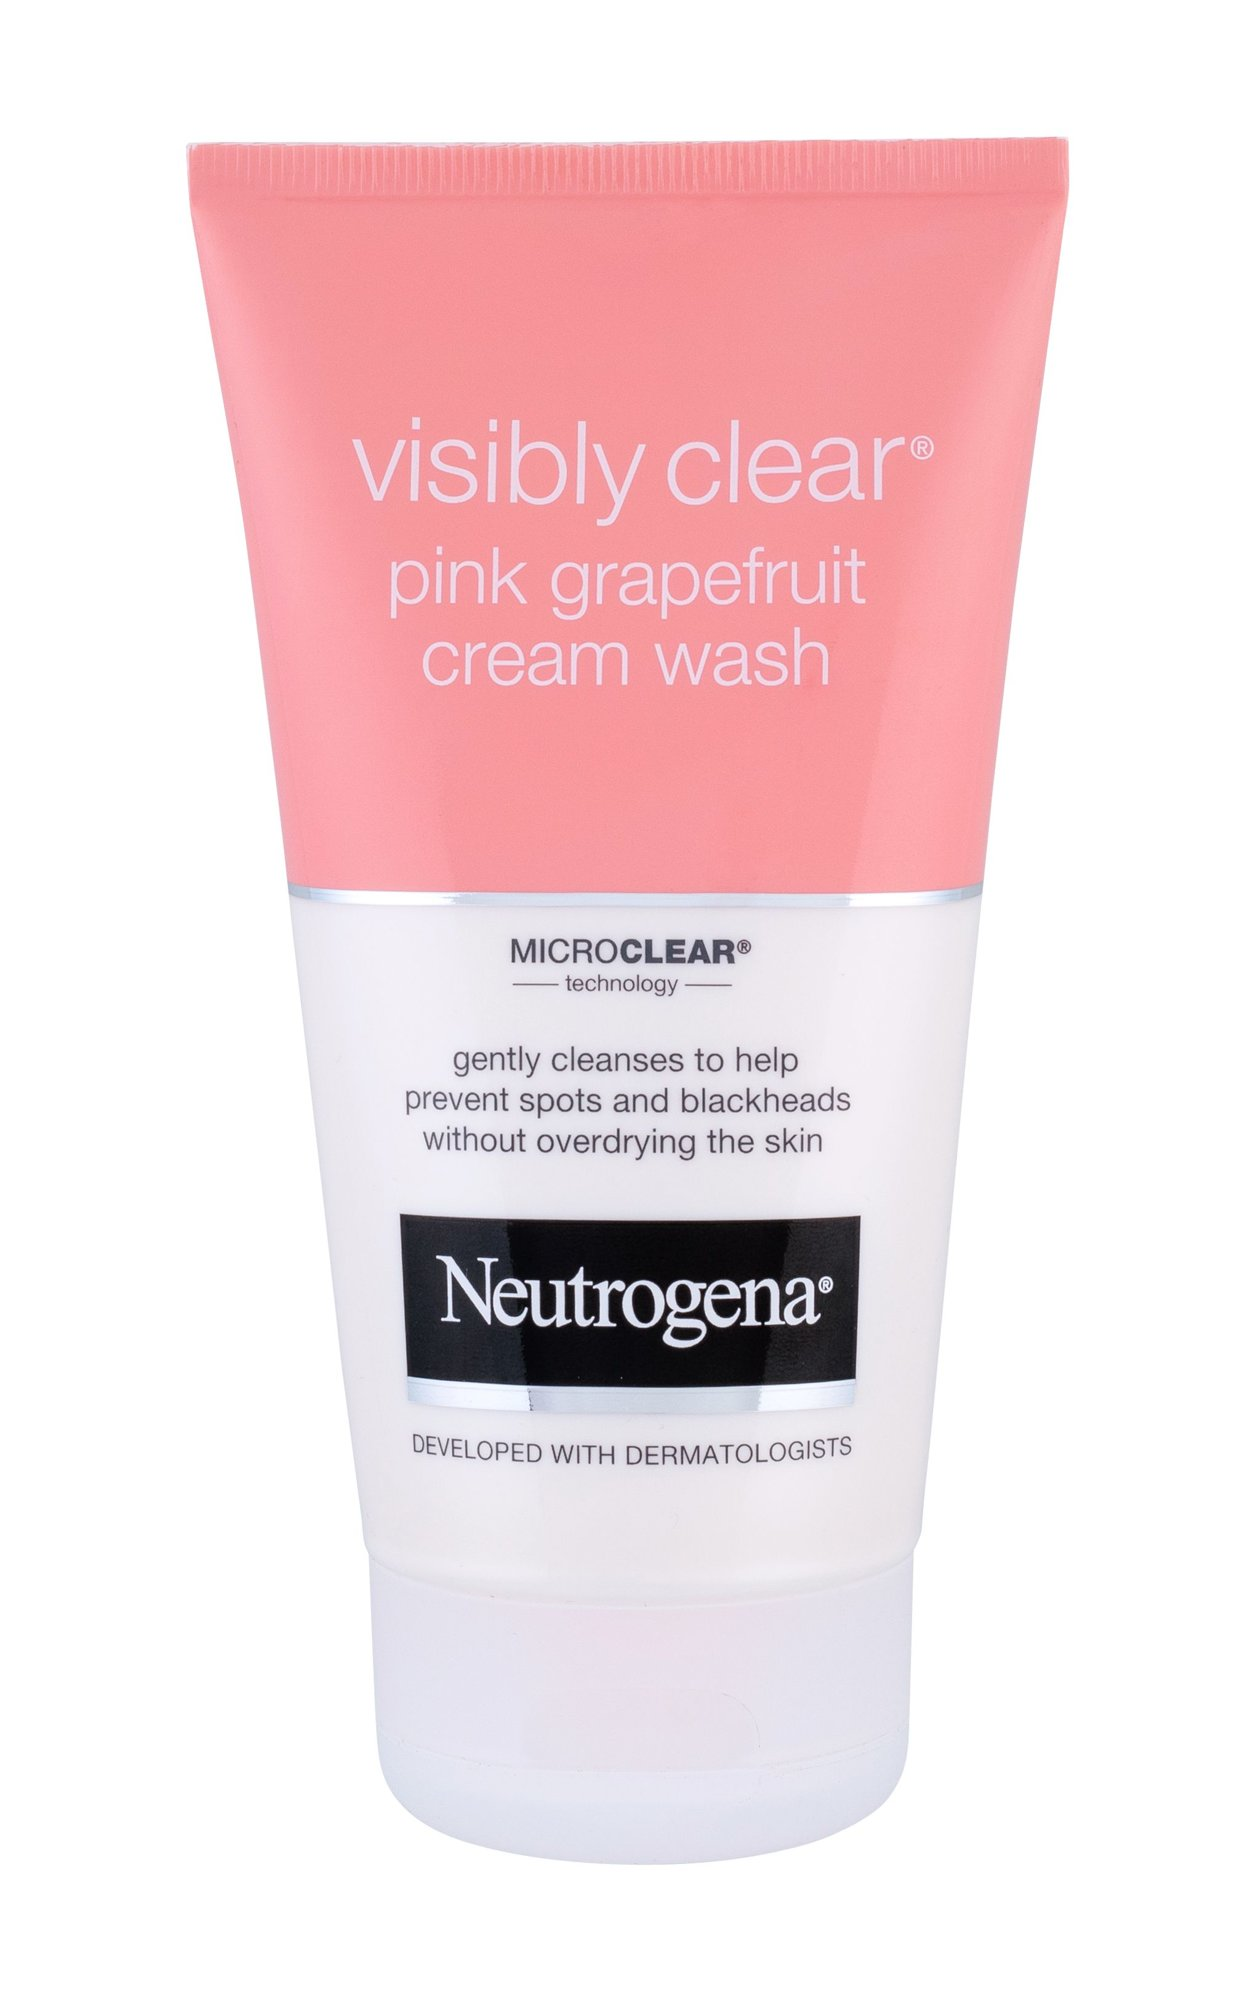 Neutrogena Visibly Clear Cosmetic 150ml  Pink Grapefruit